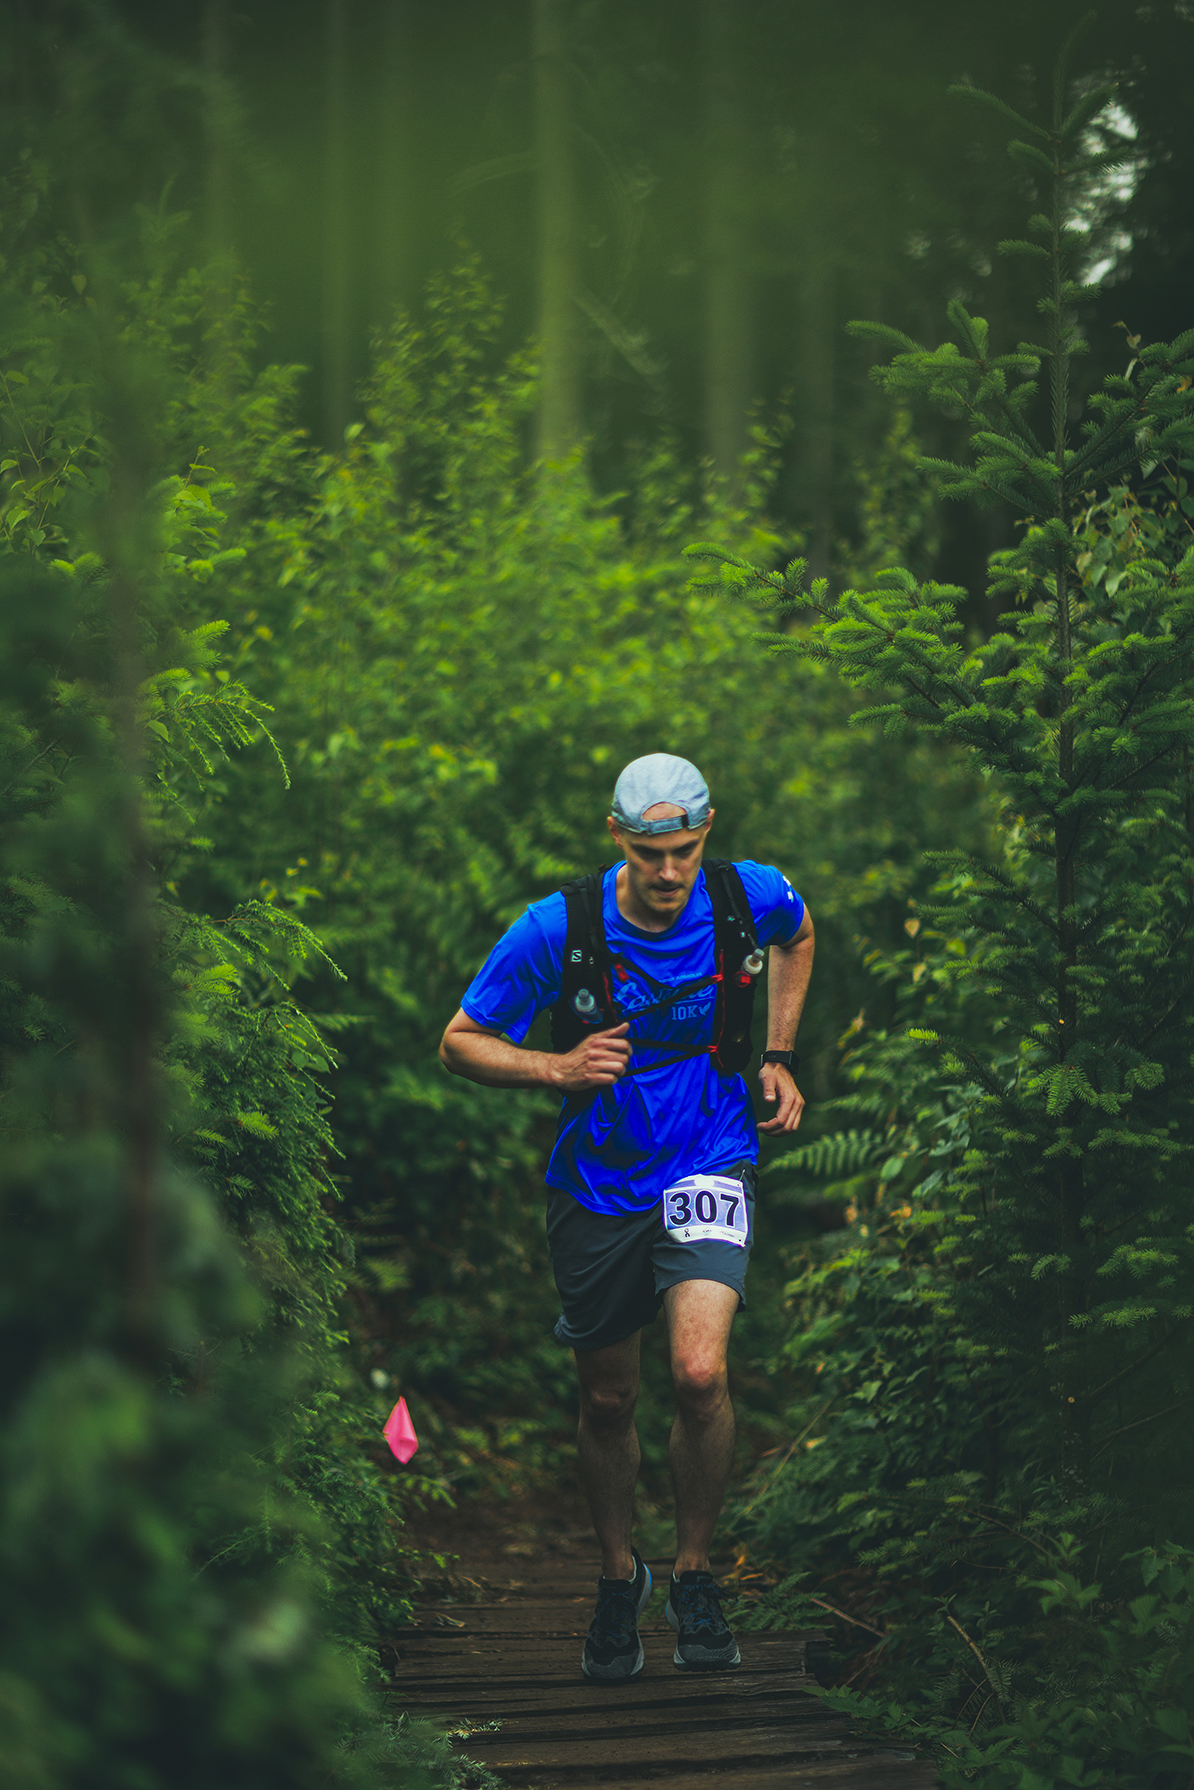 Fraser Valley Trail Races - Bear Mountain - IMG_2378 by Brice Ferre Studio - Vancouver Portrait Adventure and Athlete Photographer.jpg